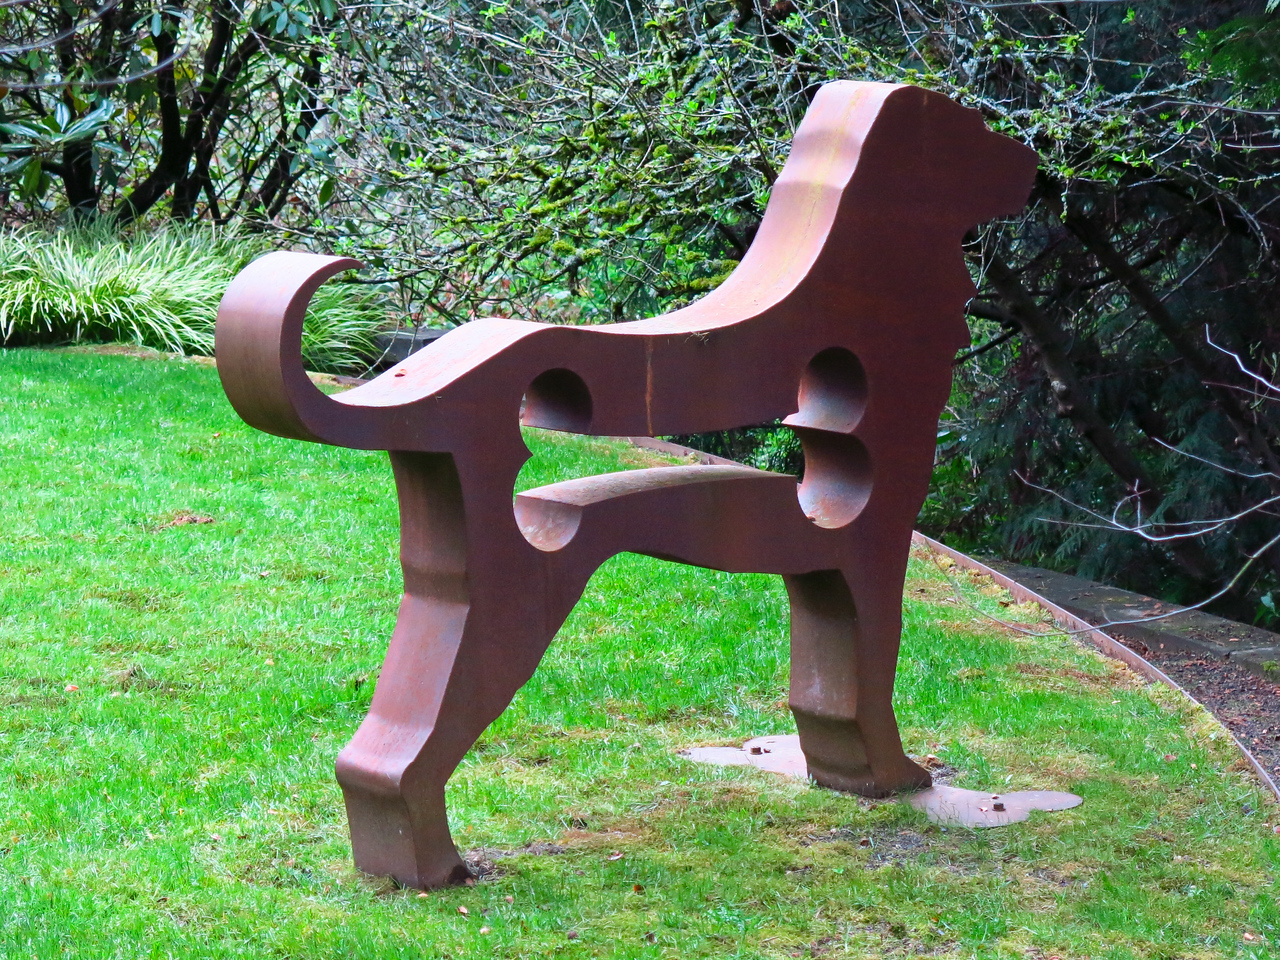 We enjoyed this clever sculpture on the lawn of a family home.